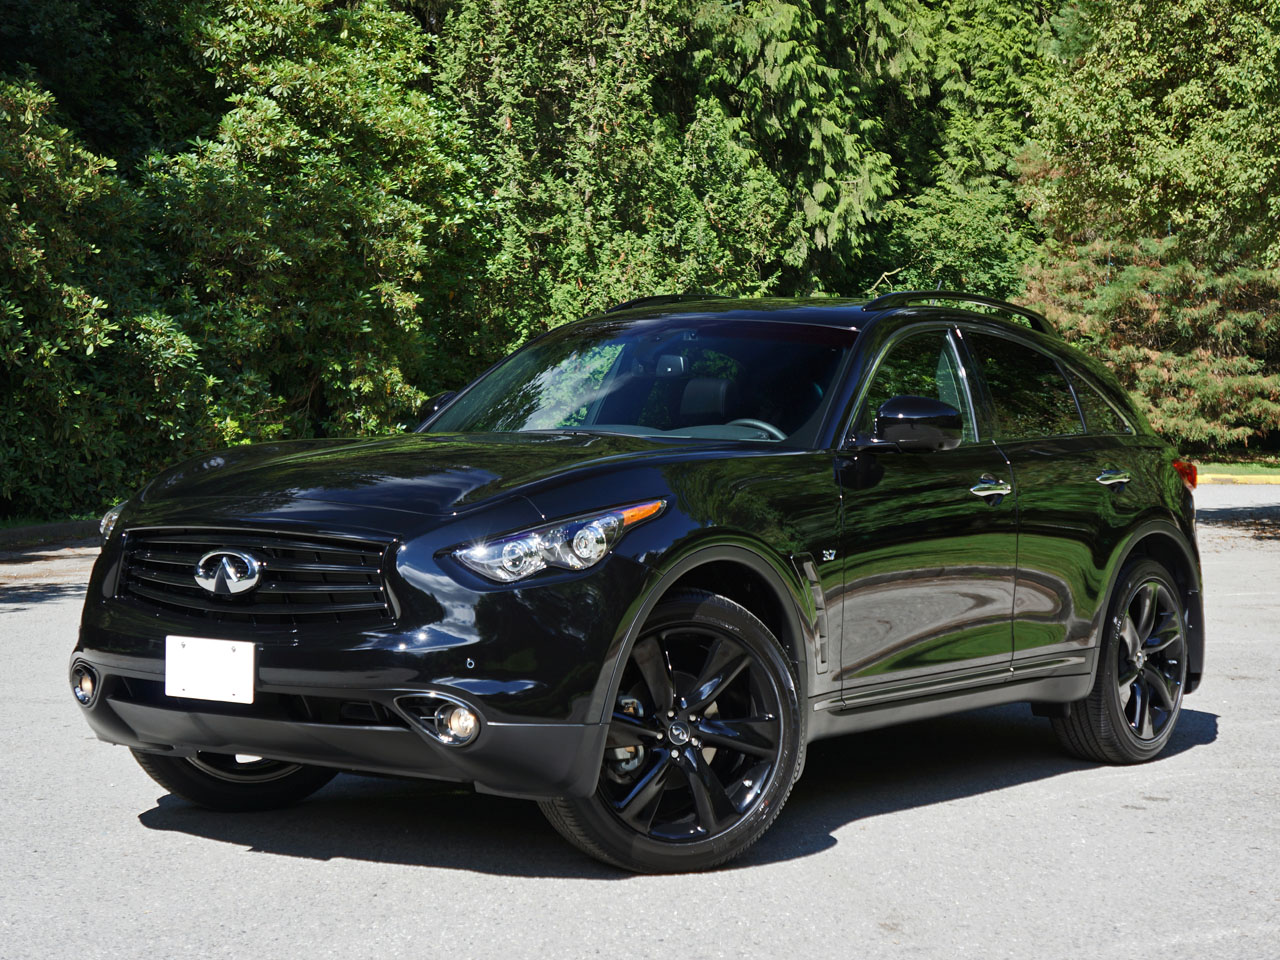 Blacked Out Suv >> 2015 Infiniti QX70 Sport Road Test Review | CarCostCanada